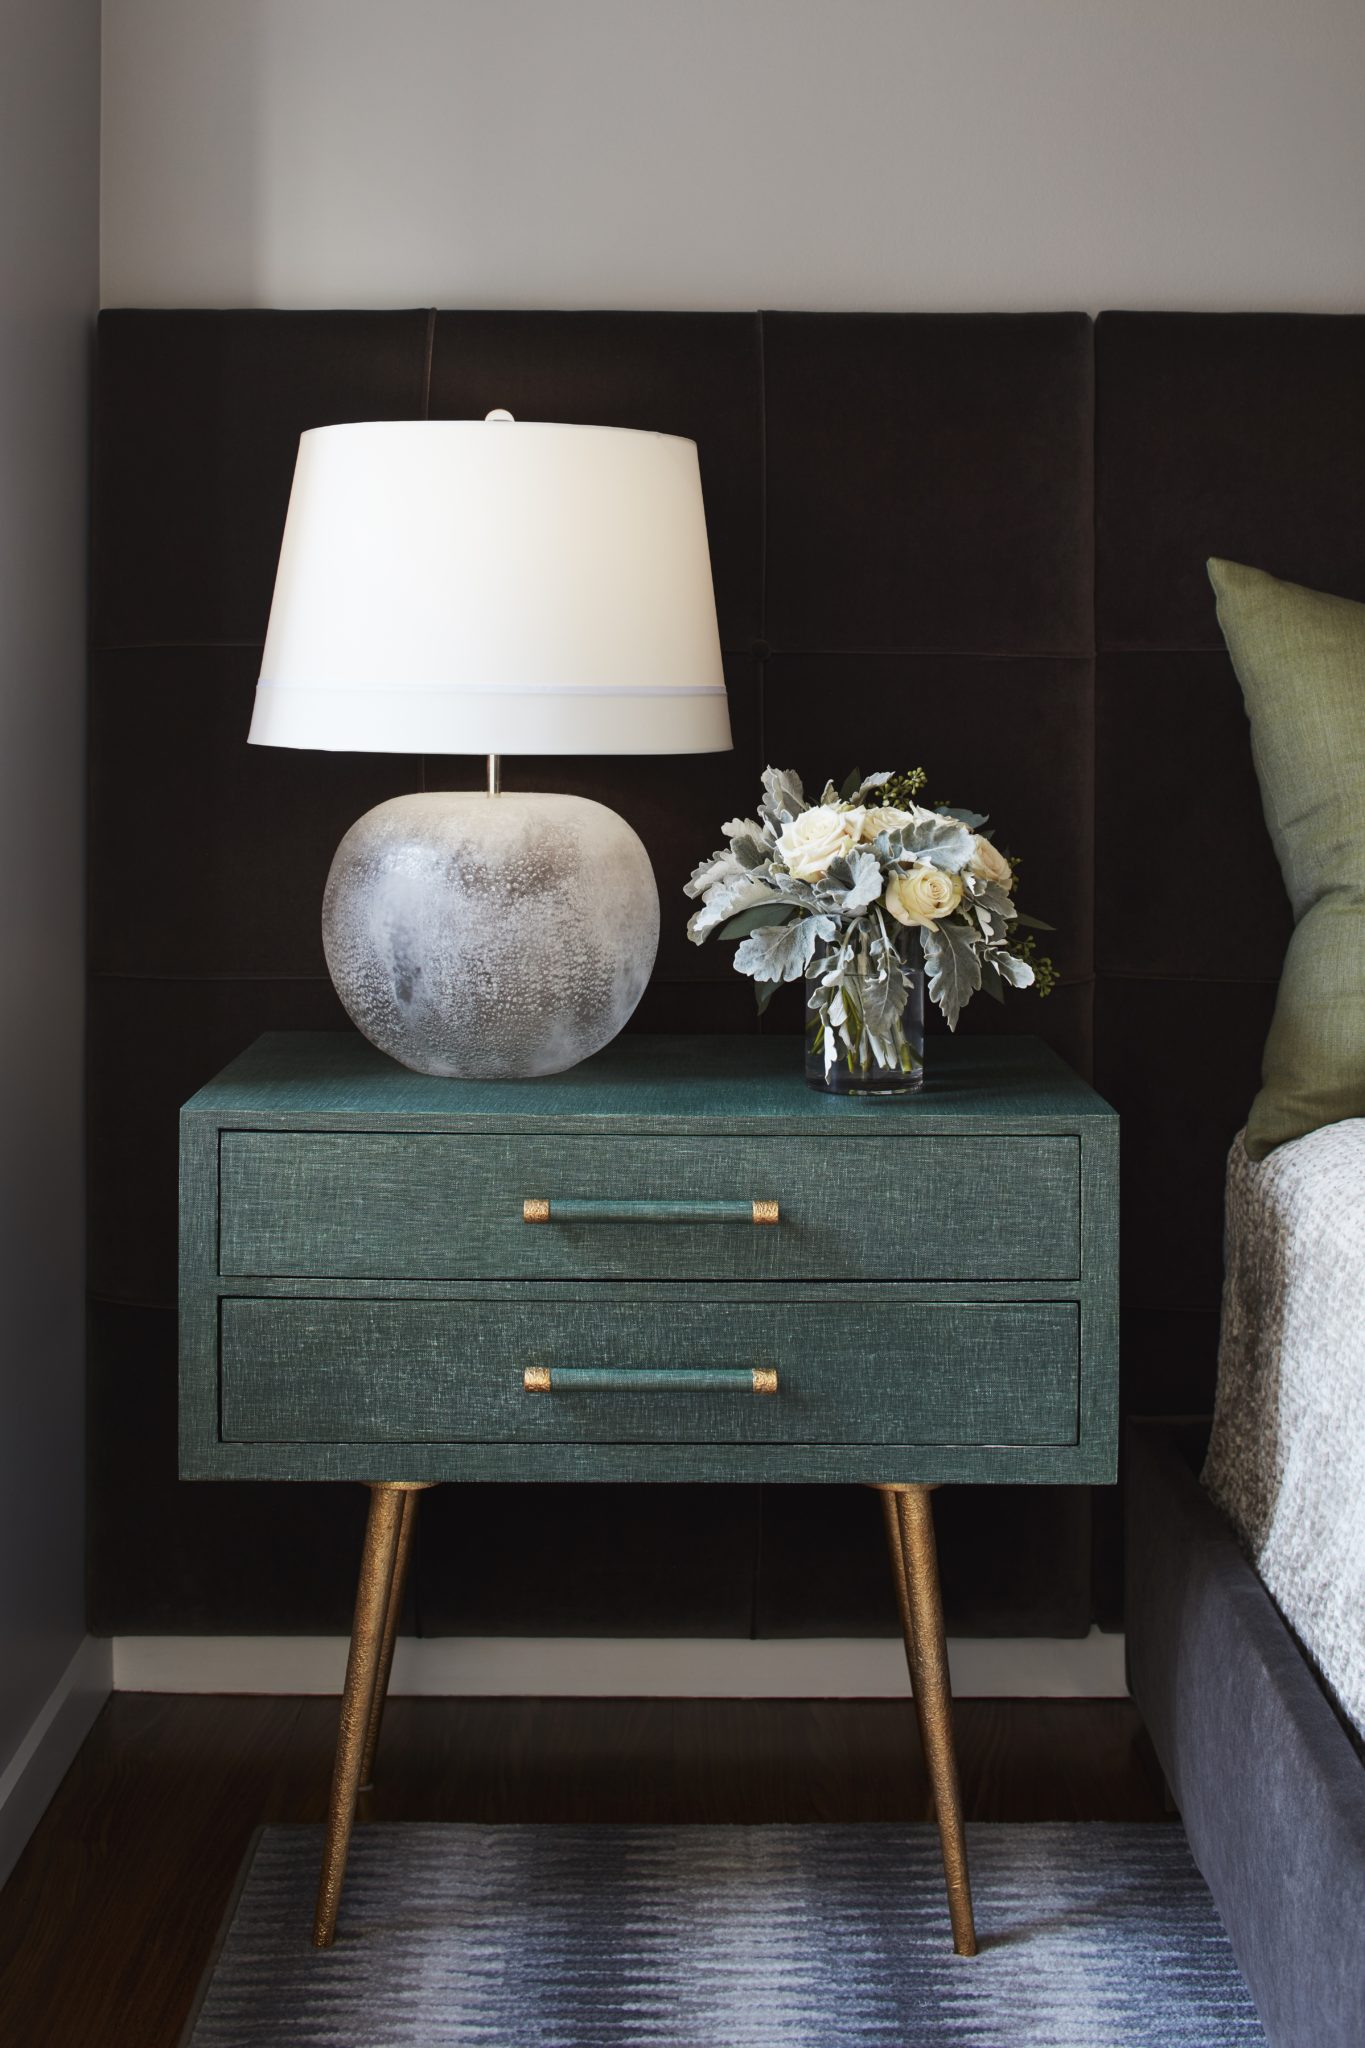 New York Vibes Master Bedroom mid-century modern nightstand vignette by House of Funk